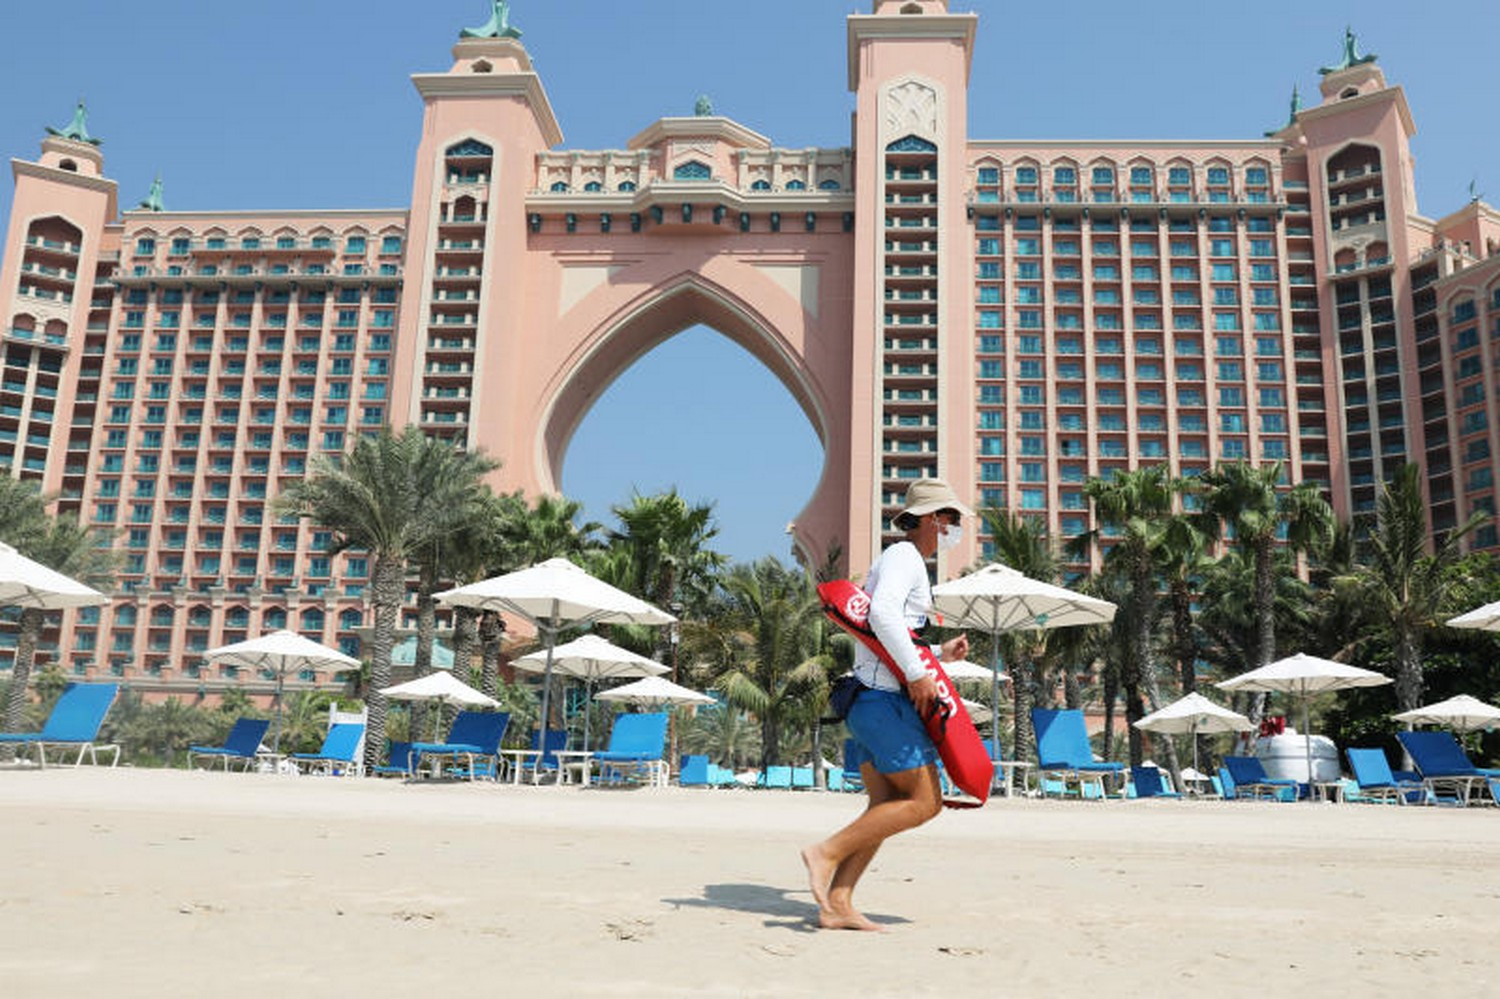 A beach lifeguard is seen at the Atlantis The Palm hotel in Dubai on July 7. (Photo Reuters)